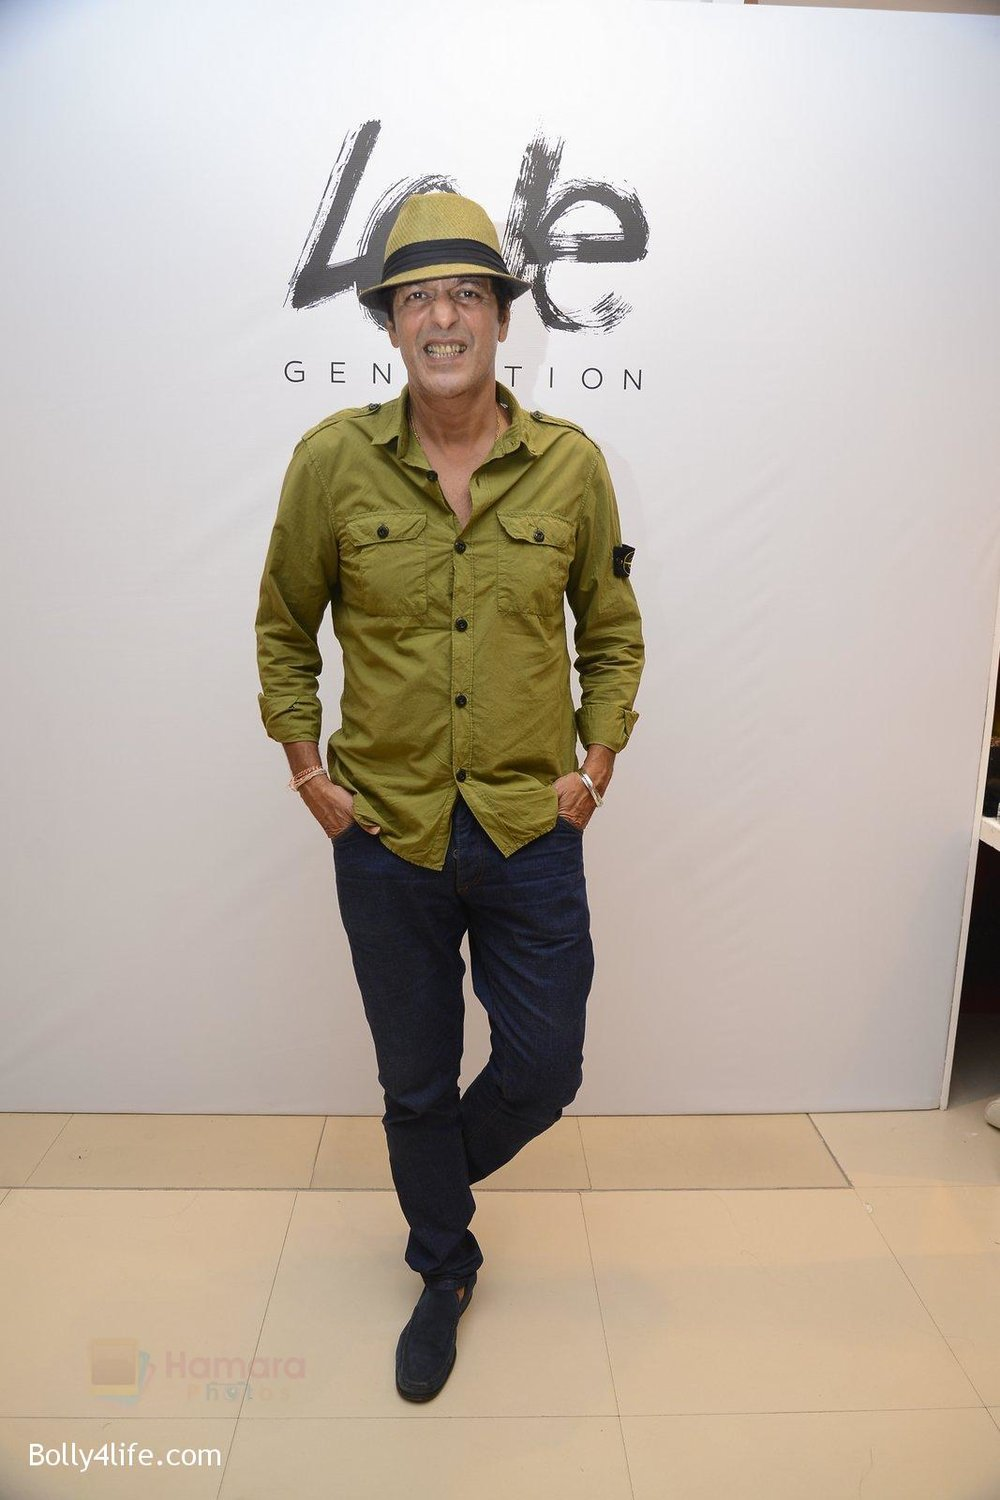 Chunky-Pandey-at-Love-Generation-launch-at-Shoppers-Stop-on-7th-Oct-2016-223.jpg